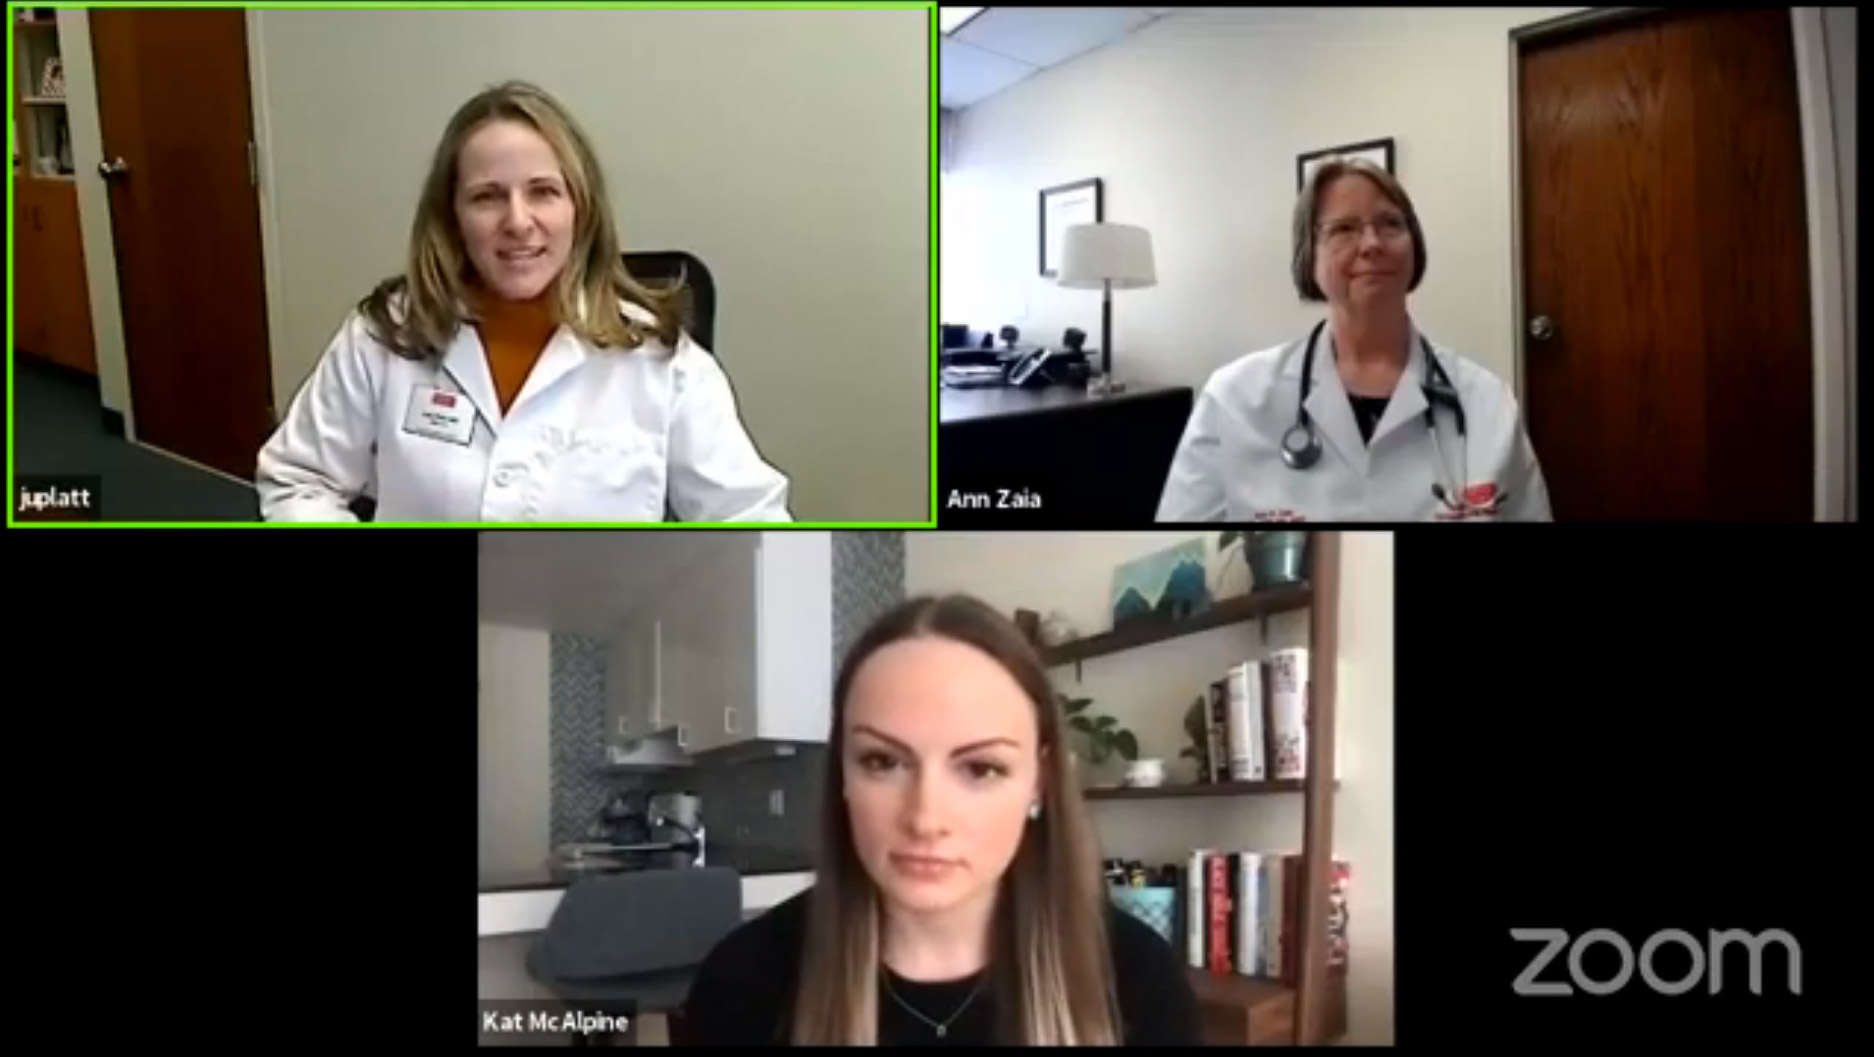 Dr. Judy Platt, Boston University Director of Student Health Services, and Dr. Ann Zaia, Boston University Director of Occupational Health Services, and Kat McAlpine, Editor of The Brink, participate in a Facebook Live conversation about COVID-19